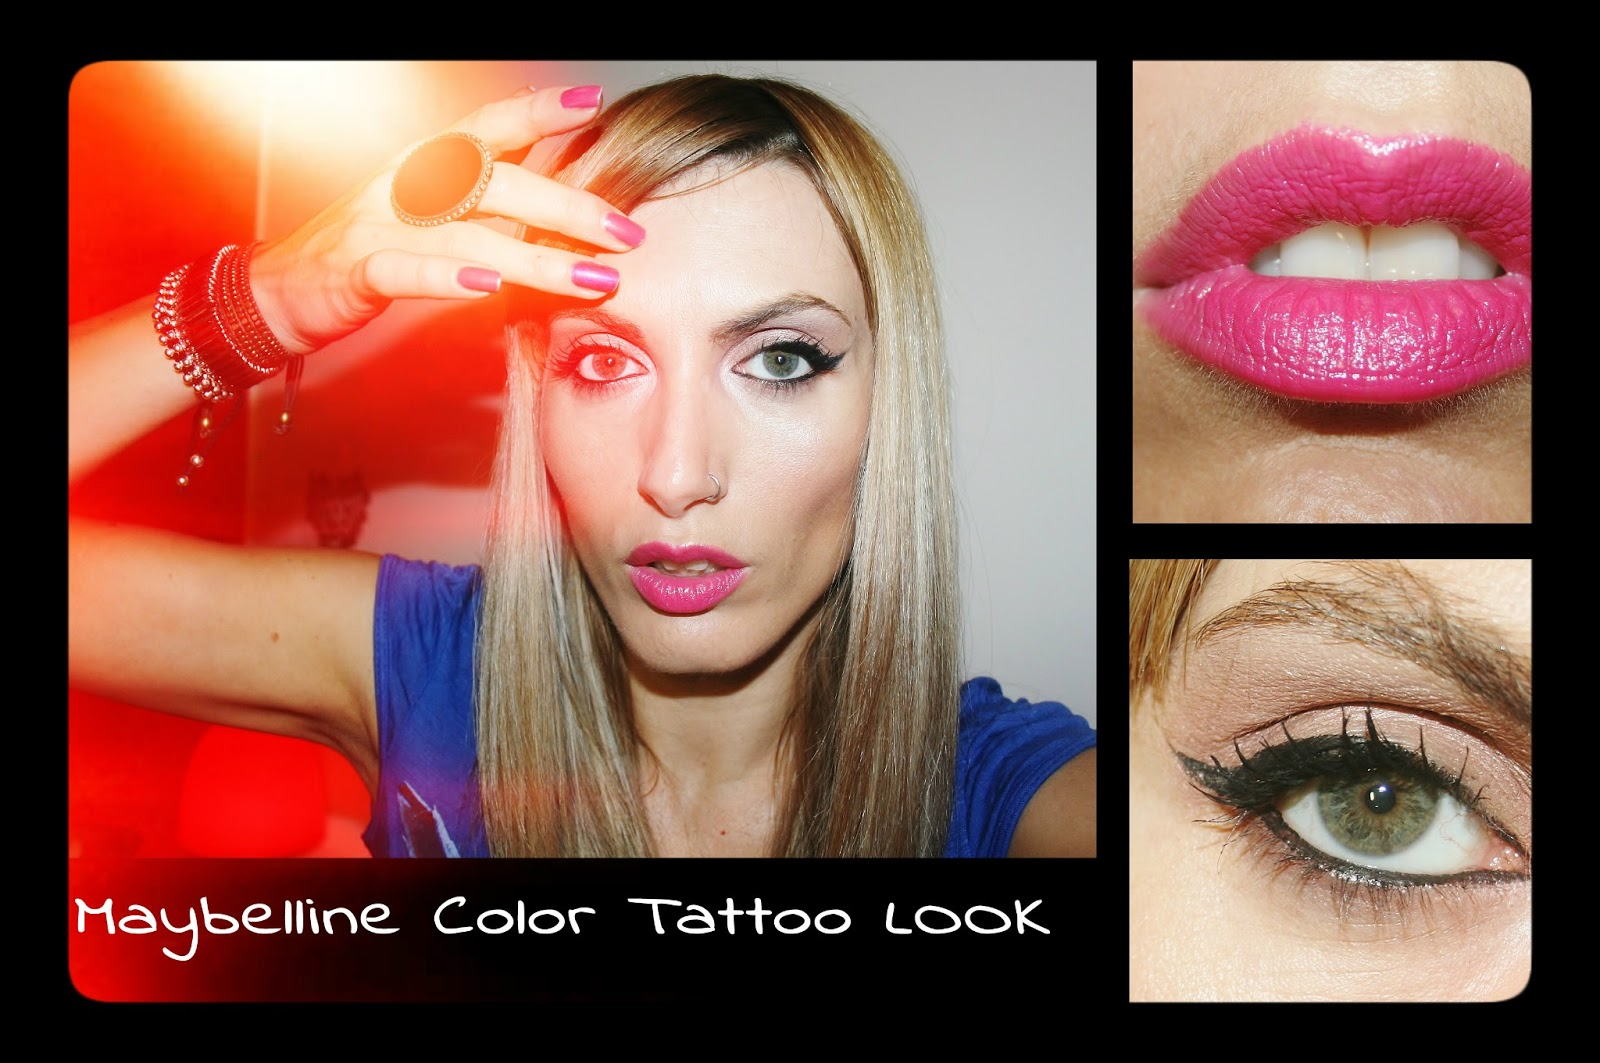 Michelaismyname maybelline color tattoo look for Color tattoo maybelline